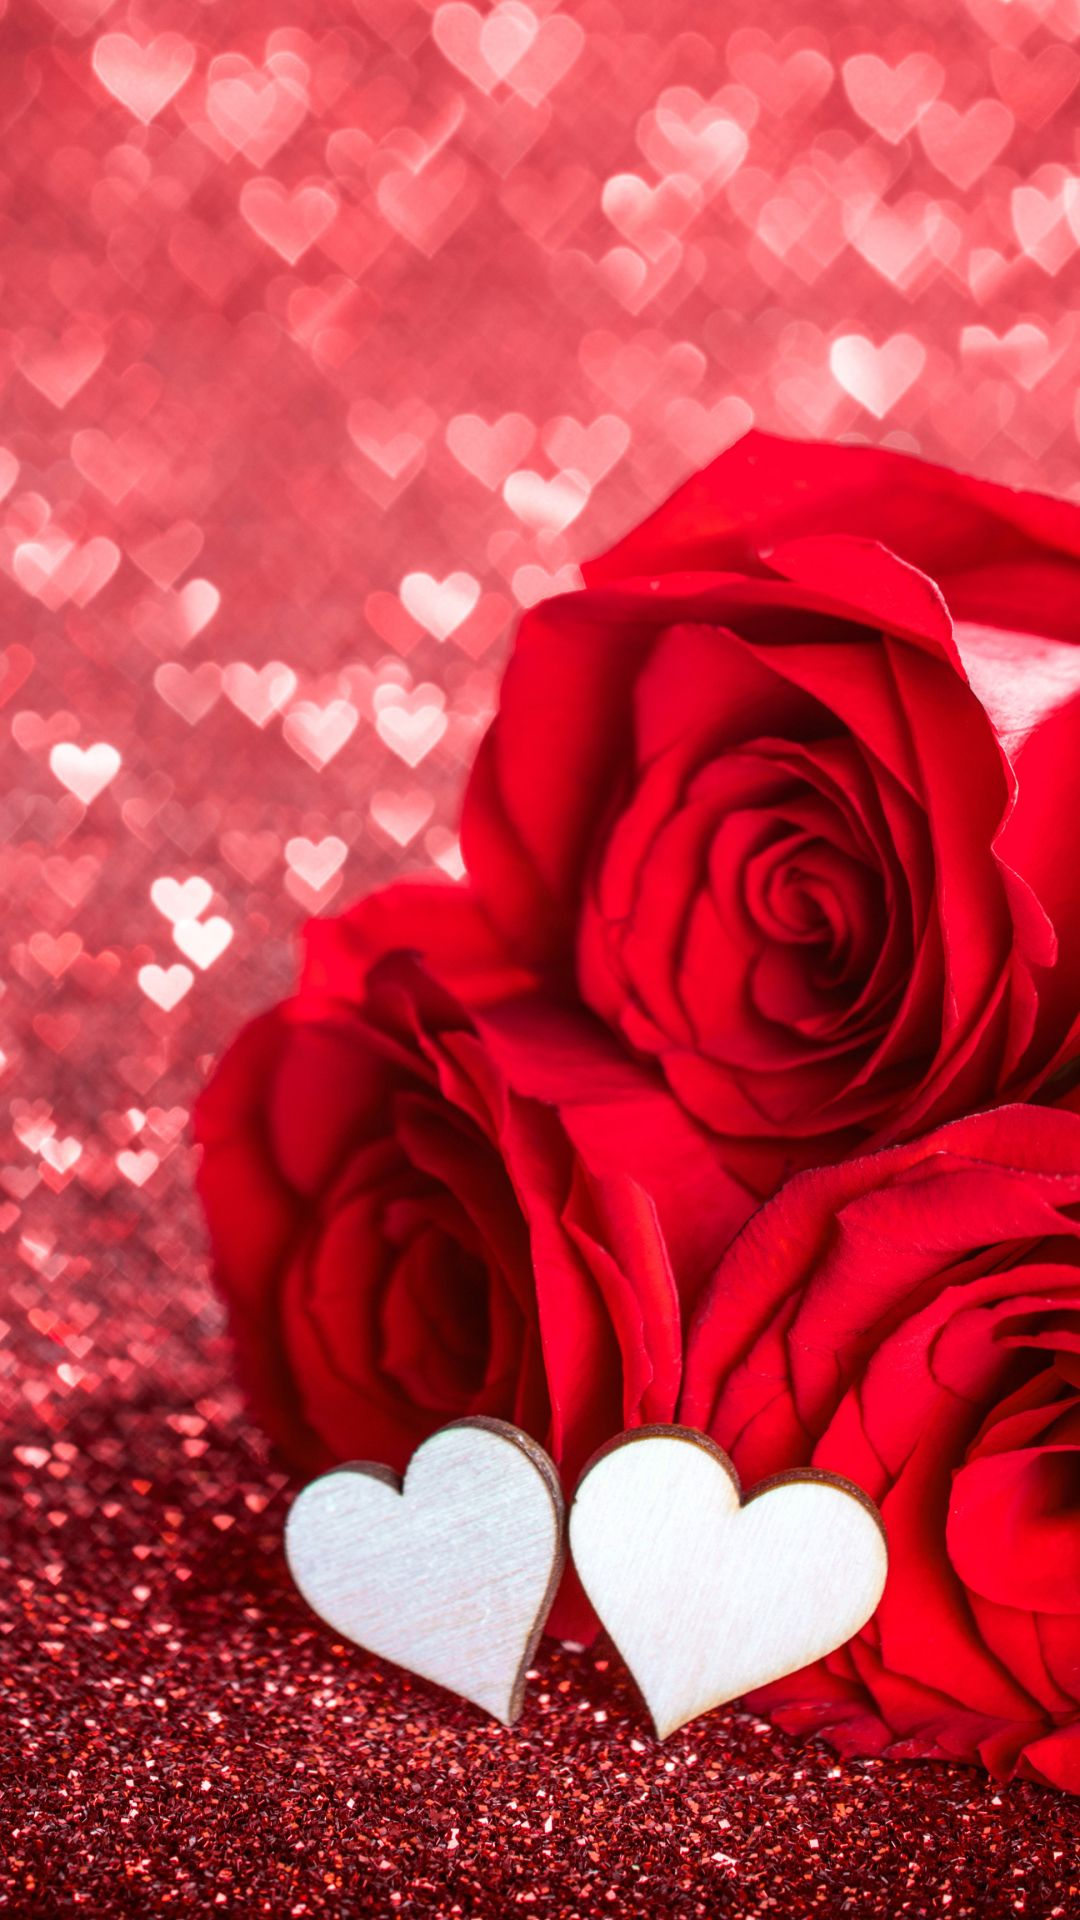 Holiday Valentine S Day Bokeh Flower Heart Shaped Love Red Flower Red Rose Romantic Rose 1080 Rose Flower Wallpaper Red Roses Wallpaper Flower Phone Wallpaper